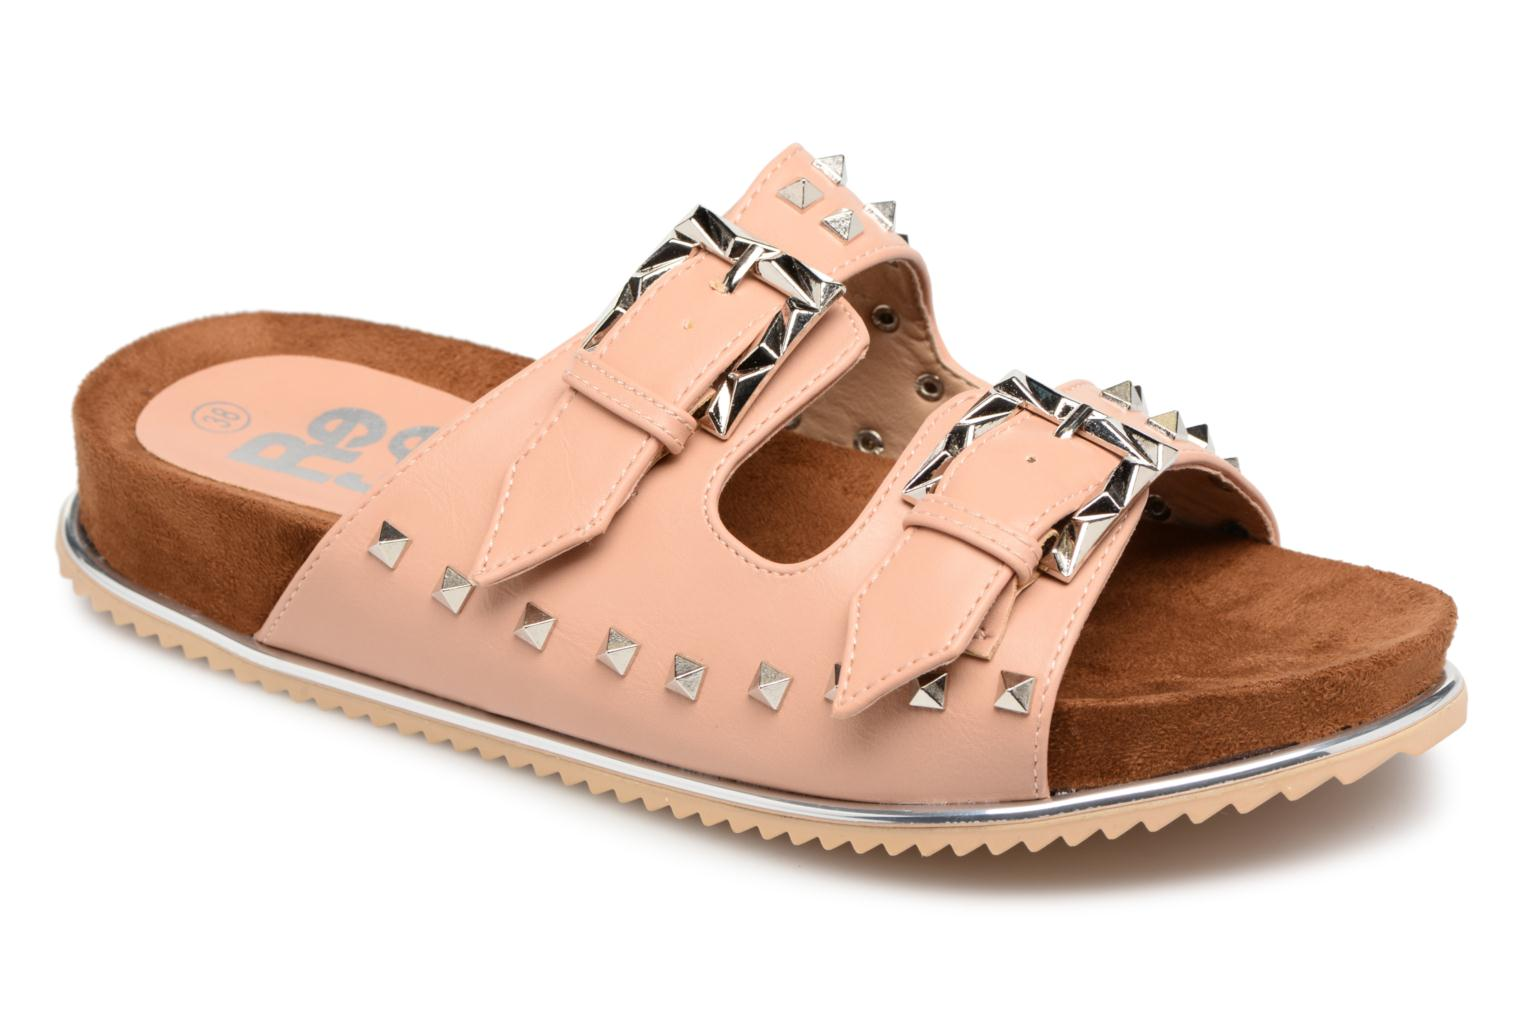 Marques Chaussure femme Refresh femme 64325 Nude